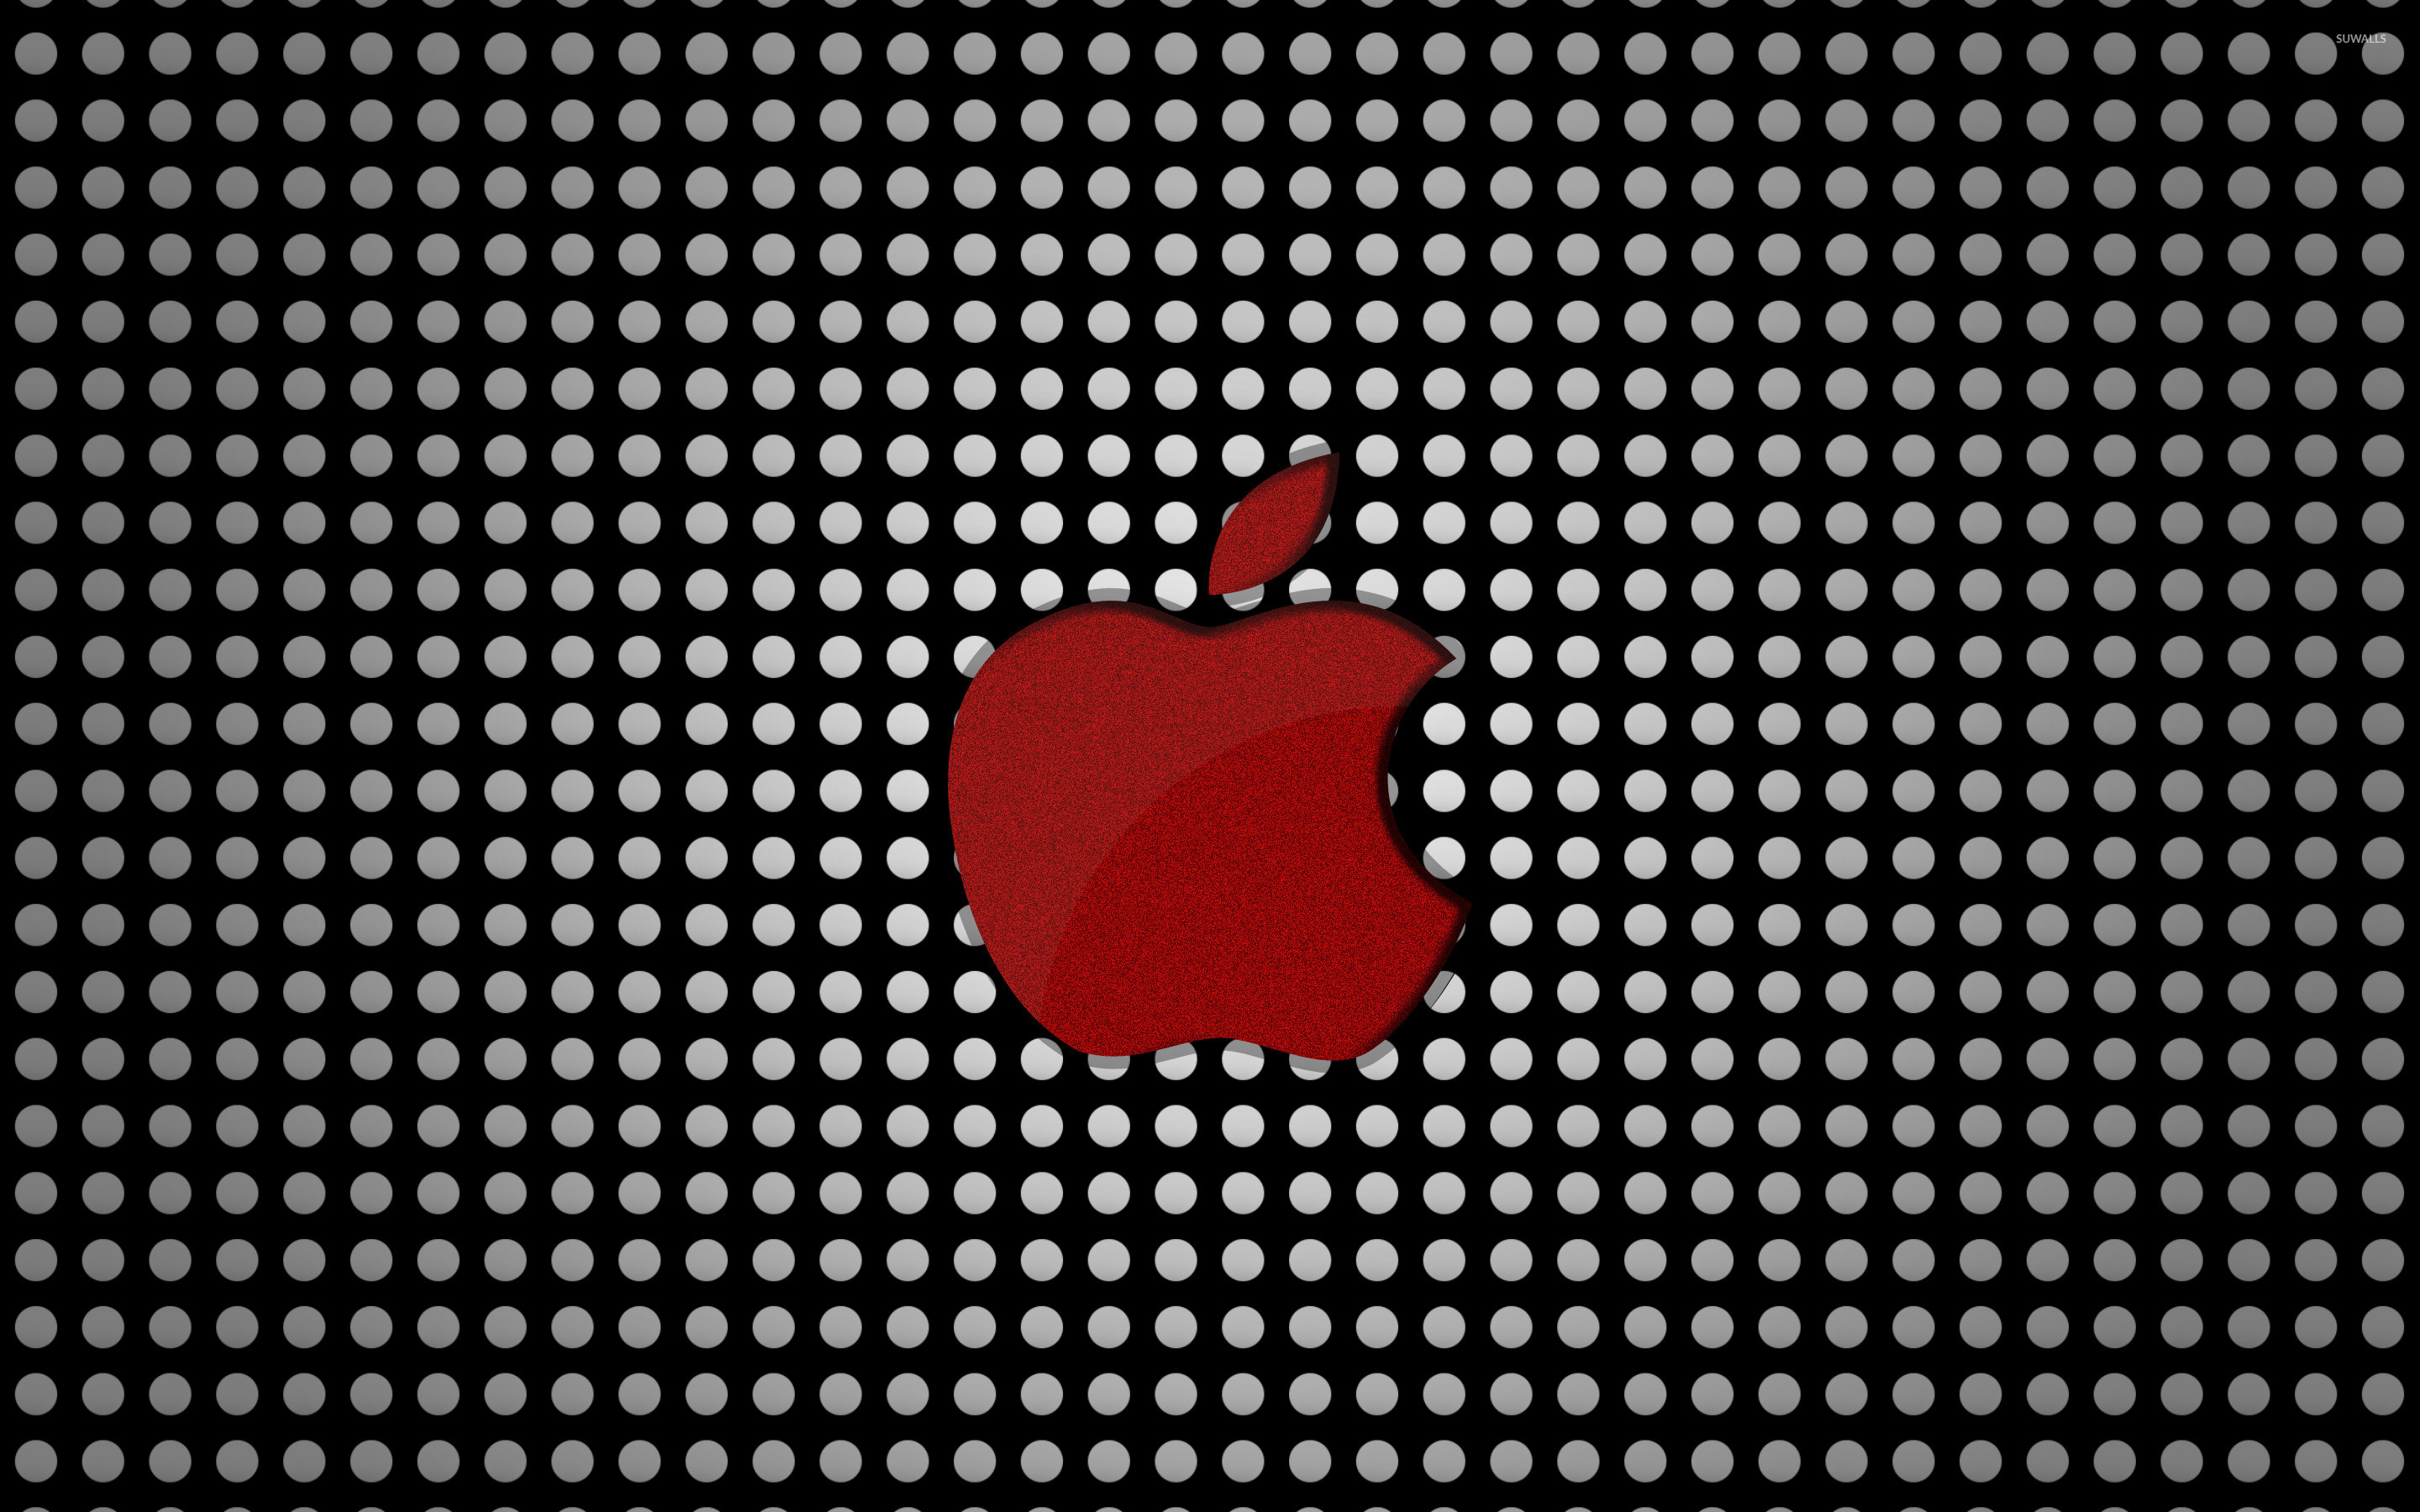 Red Apple logo on polka dots wallpaper - Computer ...